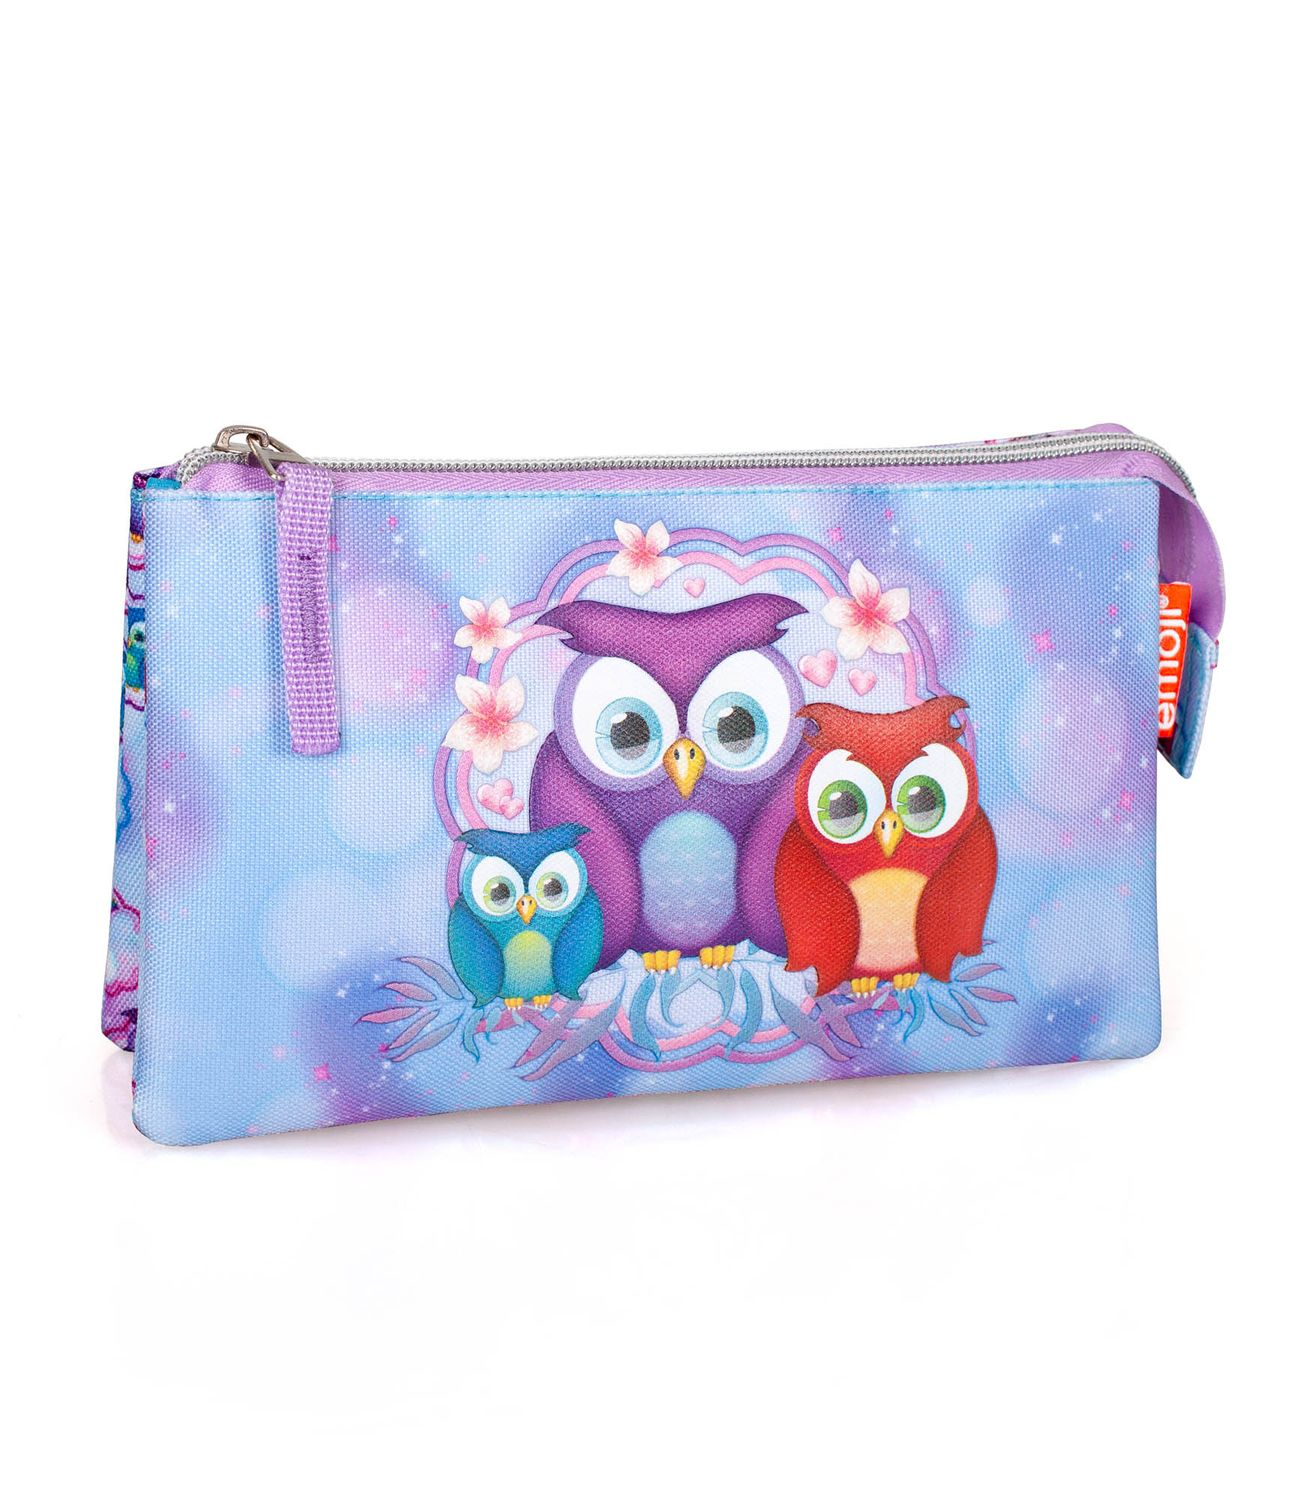 Triple Compartment Pencil Case EMOJI Official PINK OWLS – image 1